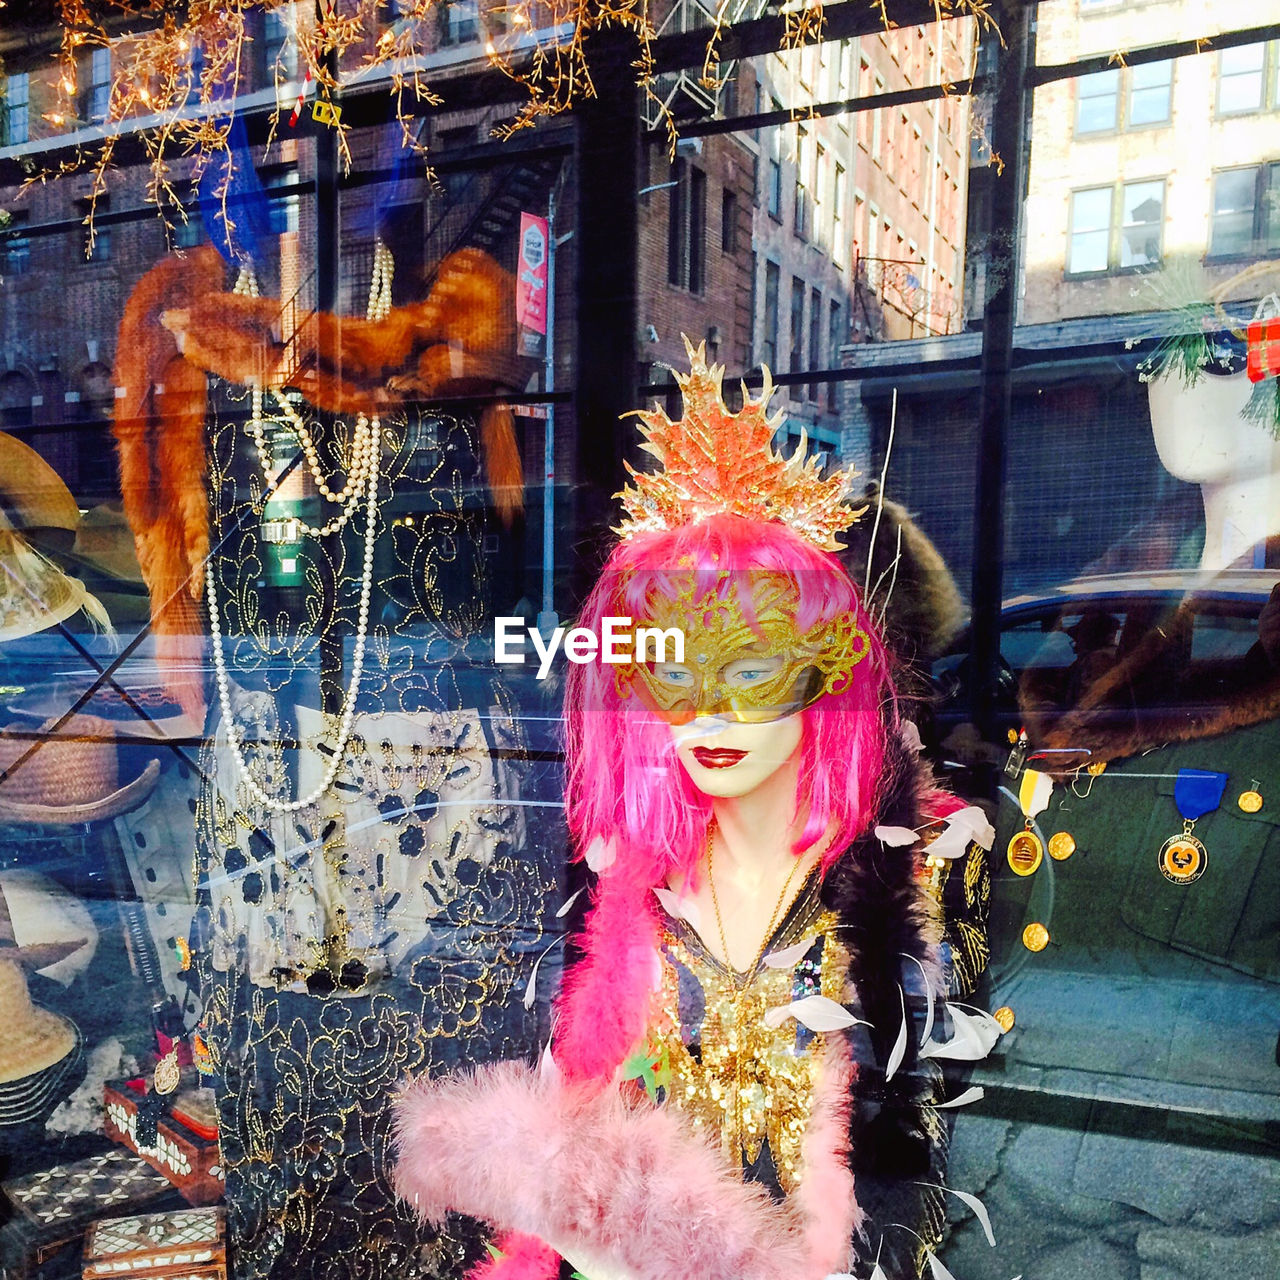 real people, retail, carnival, lifestyles, venetian mask, day, architecture, one person, outdoors, building exterior, women, people